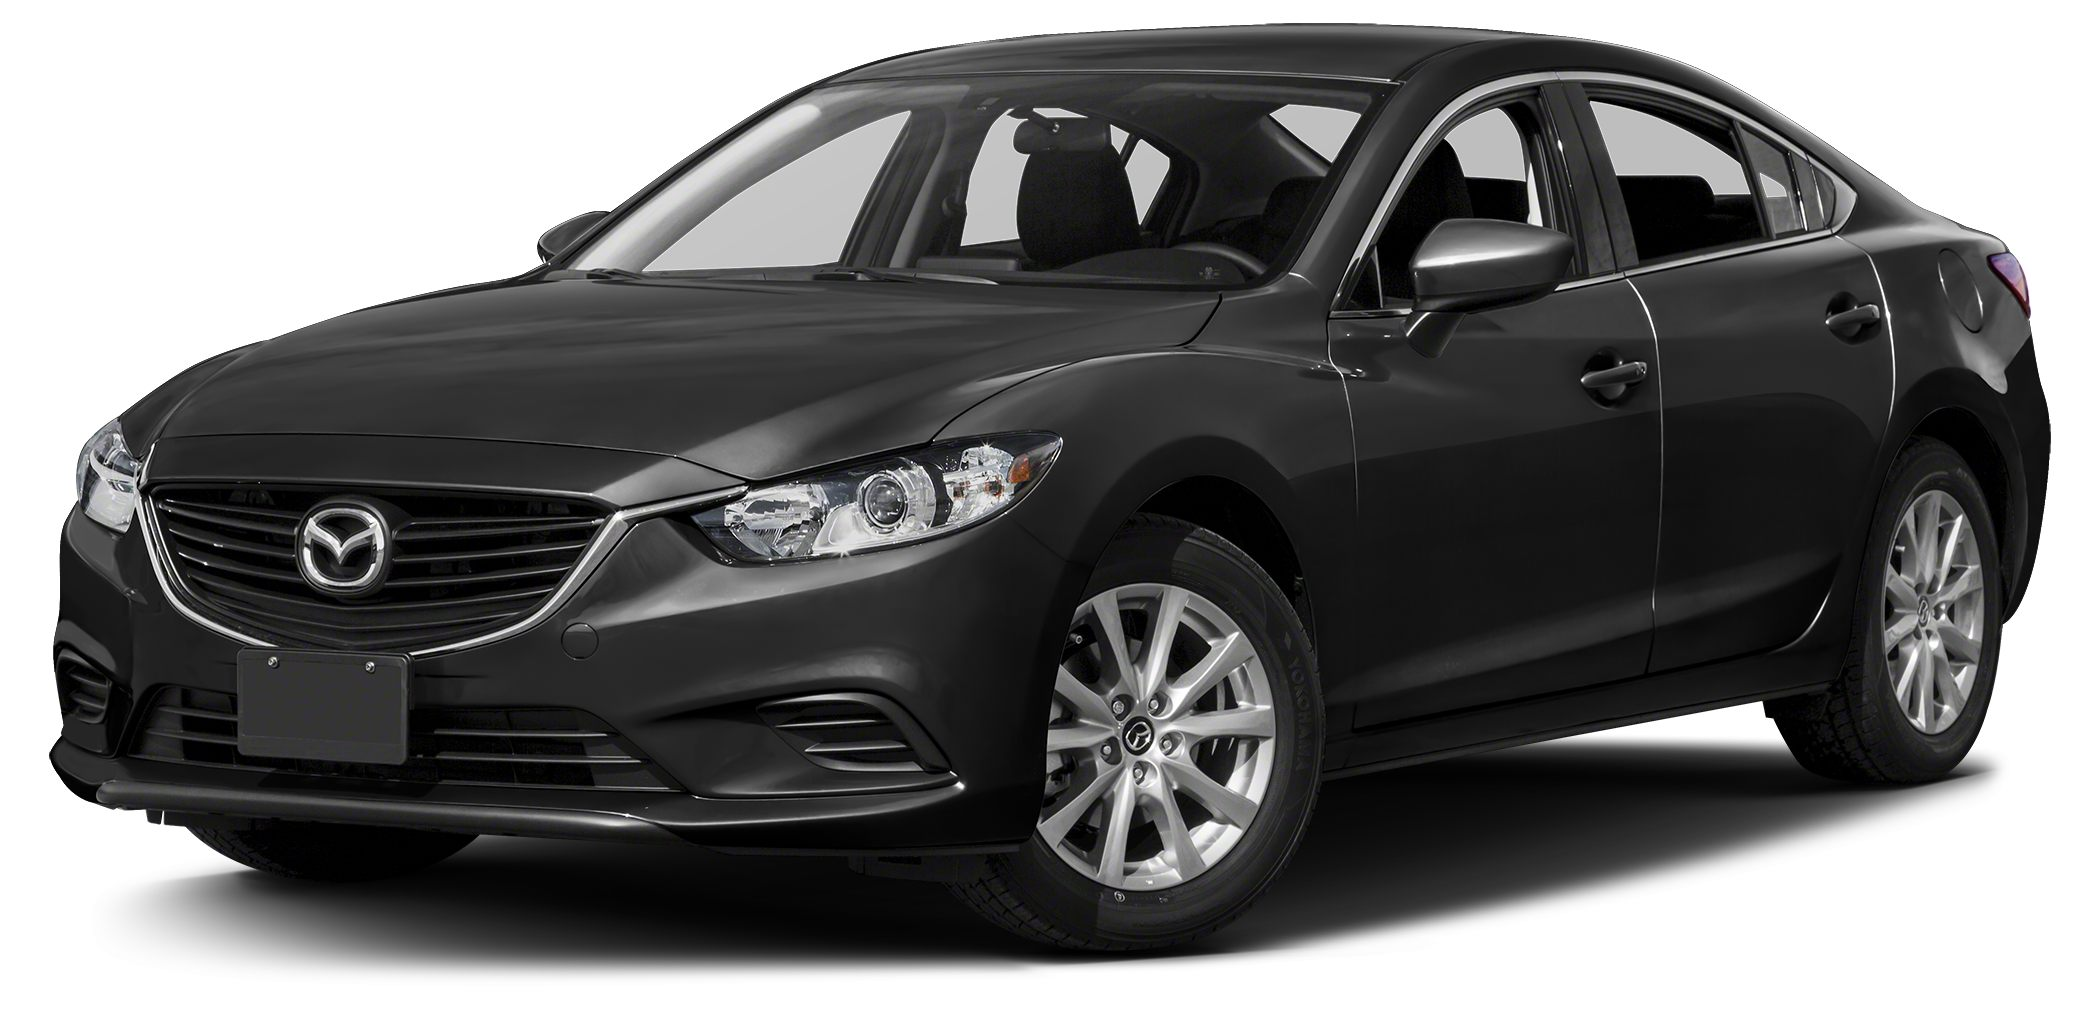 2016 Mazda MAZDA6 i Sport This 2016 Mazda Mazda6 4dr 4dr Sedan Automatic i Sport features a 25L 4